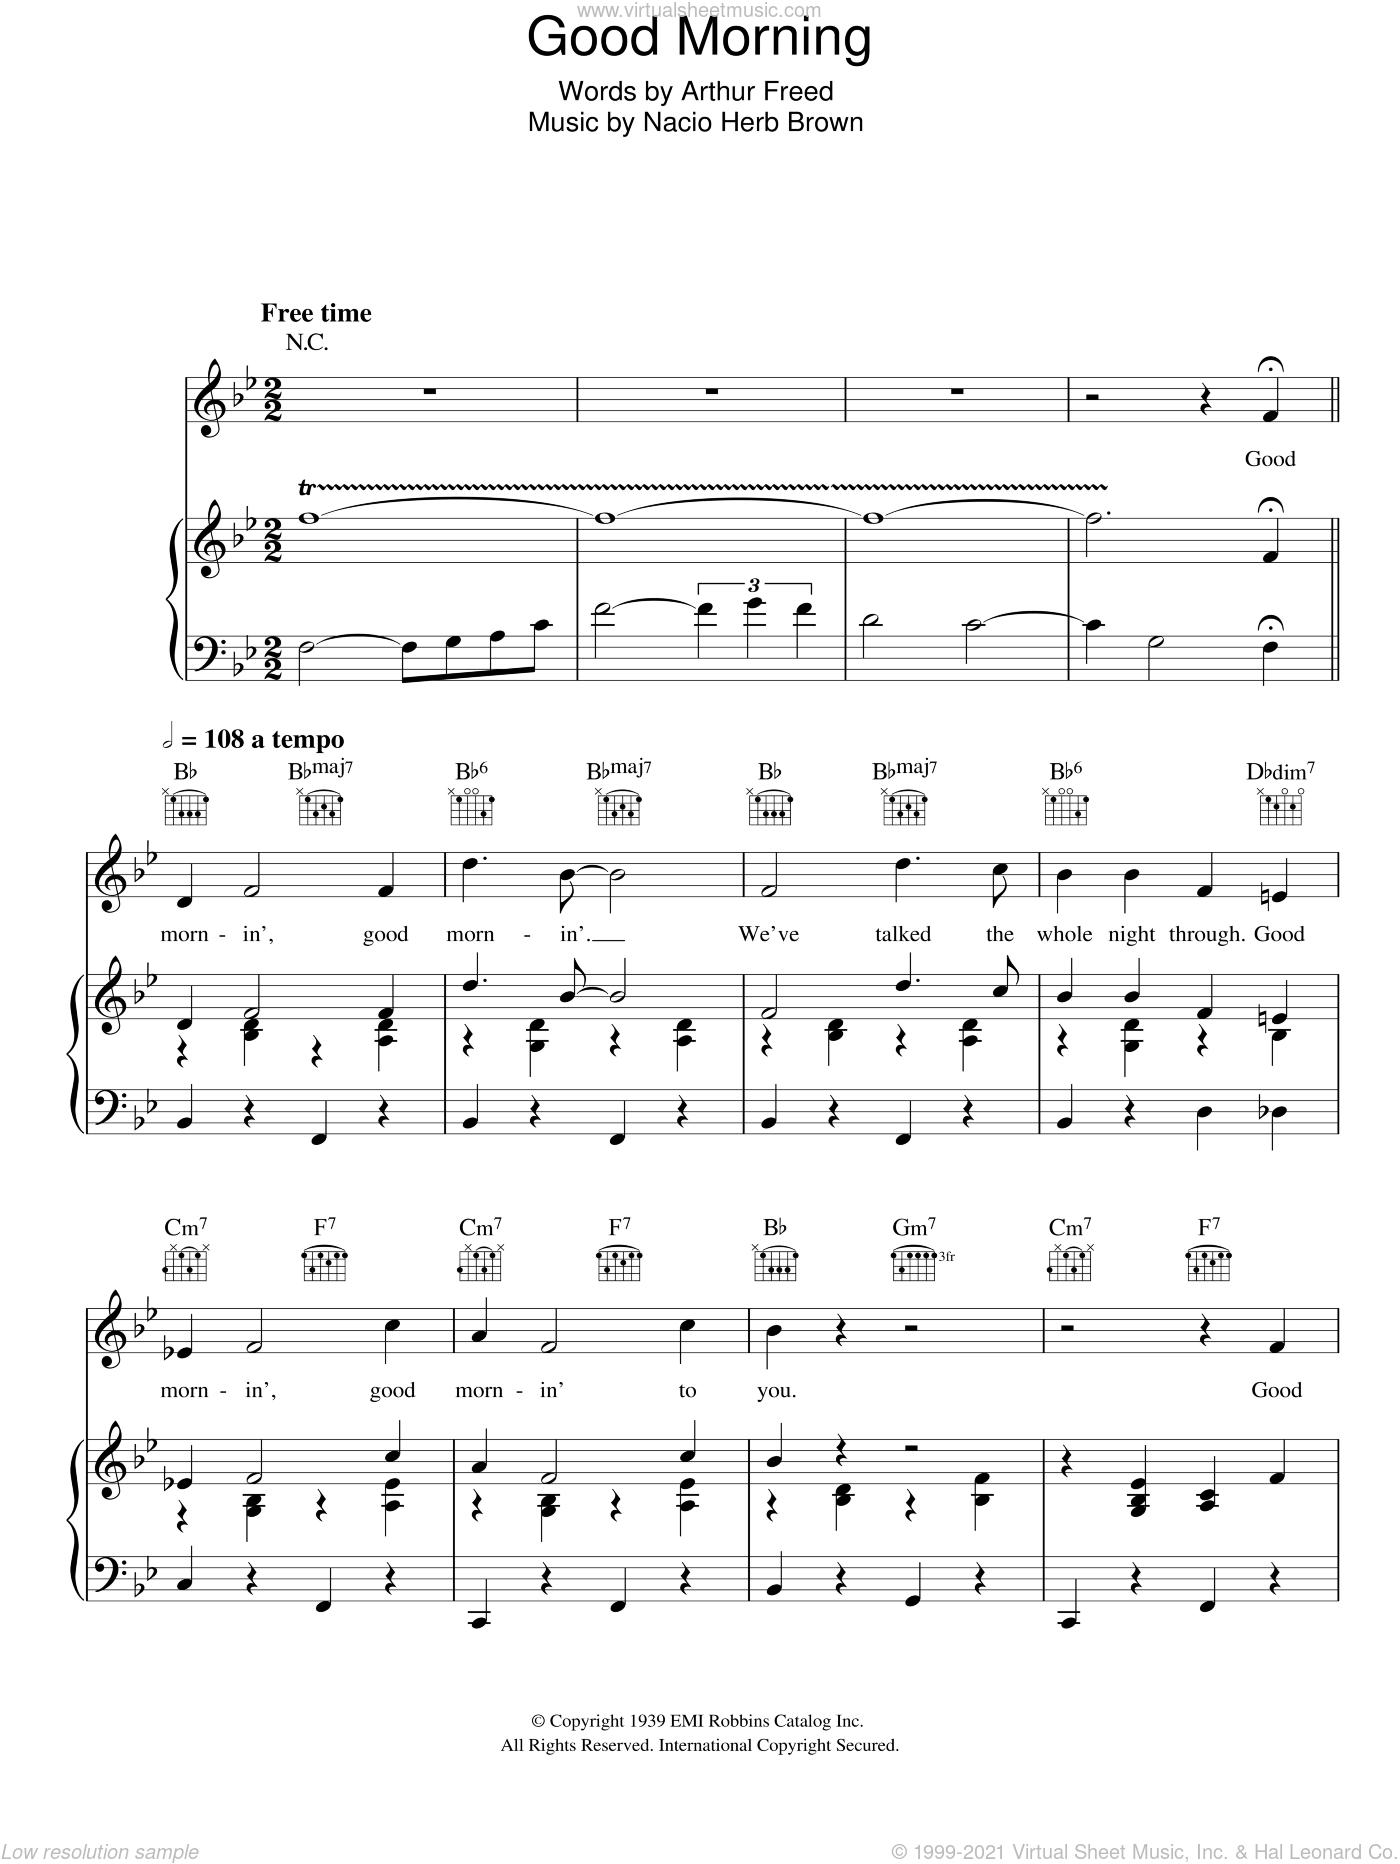 Good Morning (from Singin' In The Rain) sheet music for voice, piano or guitar by Nacio Herb Brown and Arthur Freed, intermediate skill level